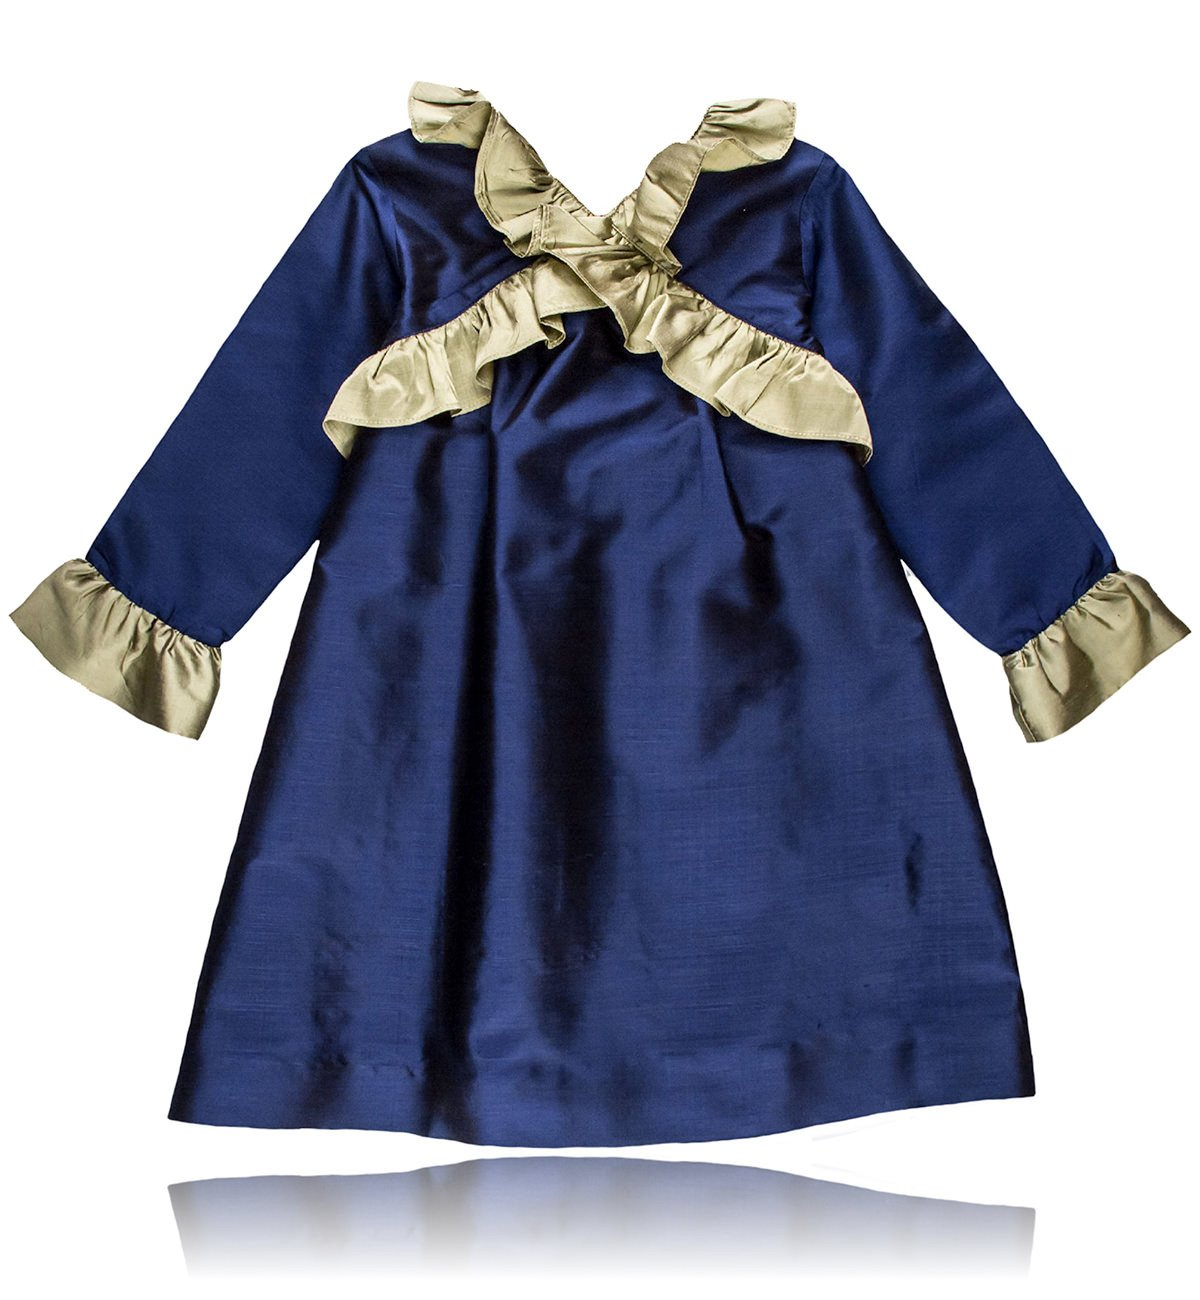 Spanish baby clothes | baby Dress | Navy blue & dusty gold silk dress |babymaC  - 1